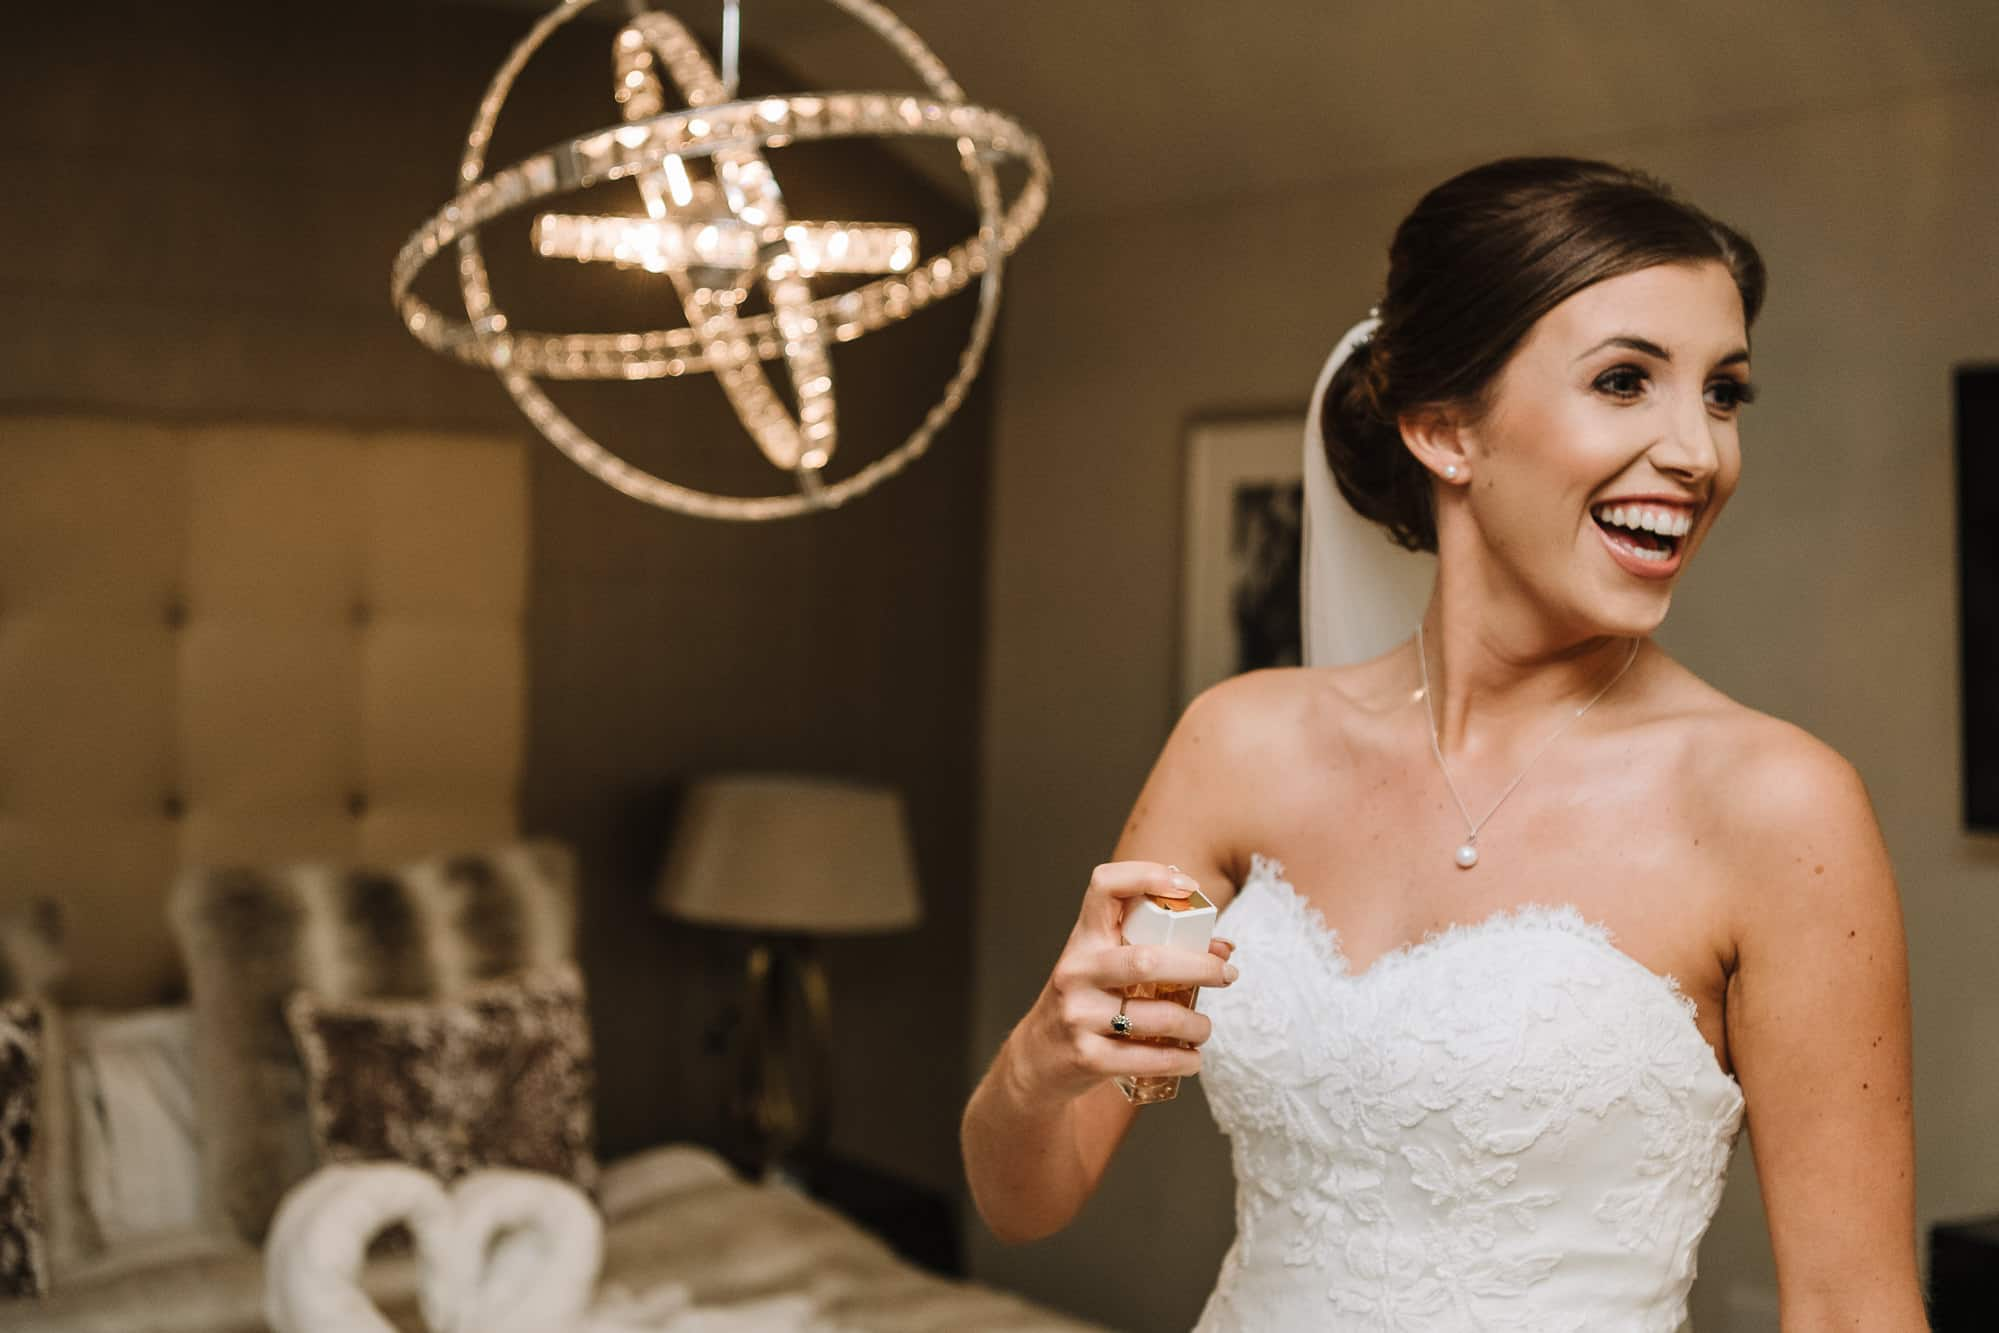 Bride laughing and spraying perfume